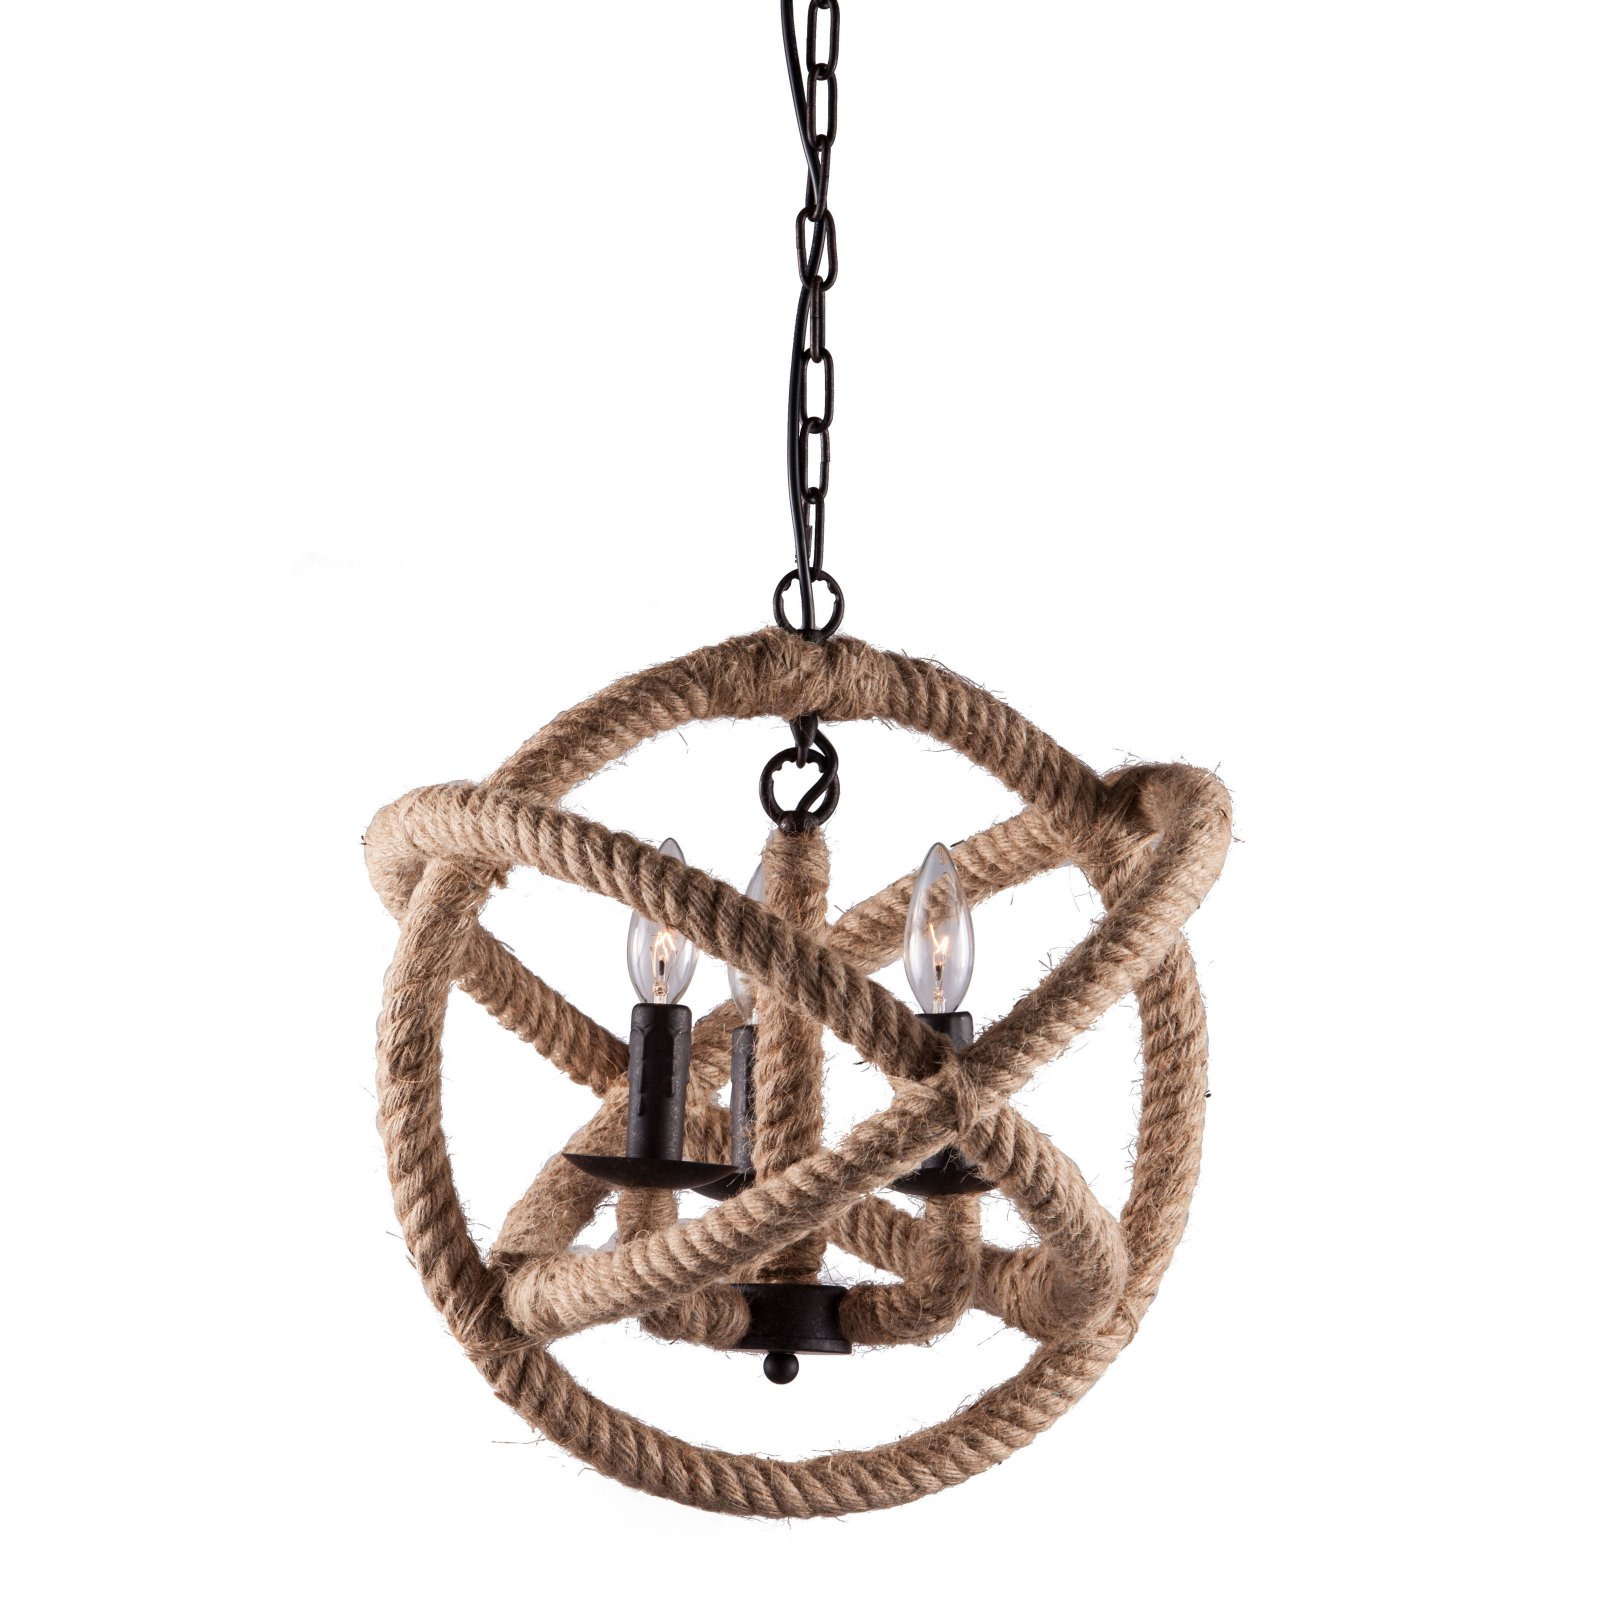 Zuo Modern Caledonite Ceiling Lamp